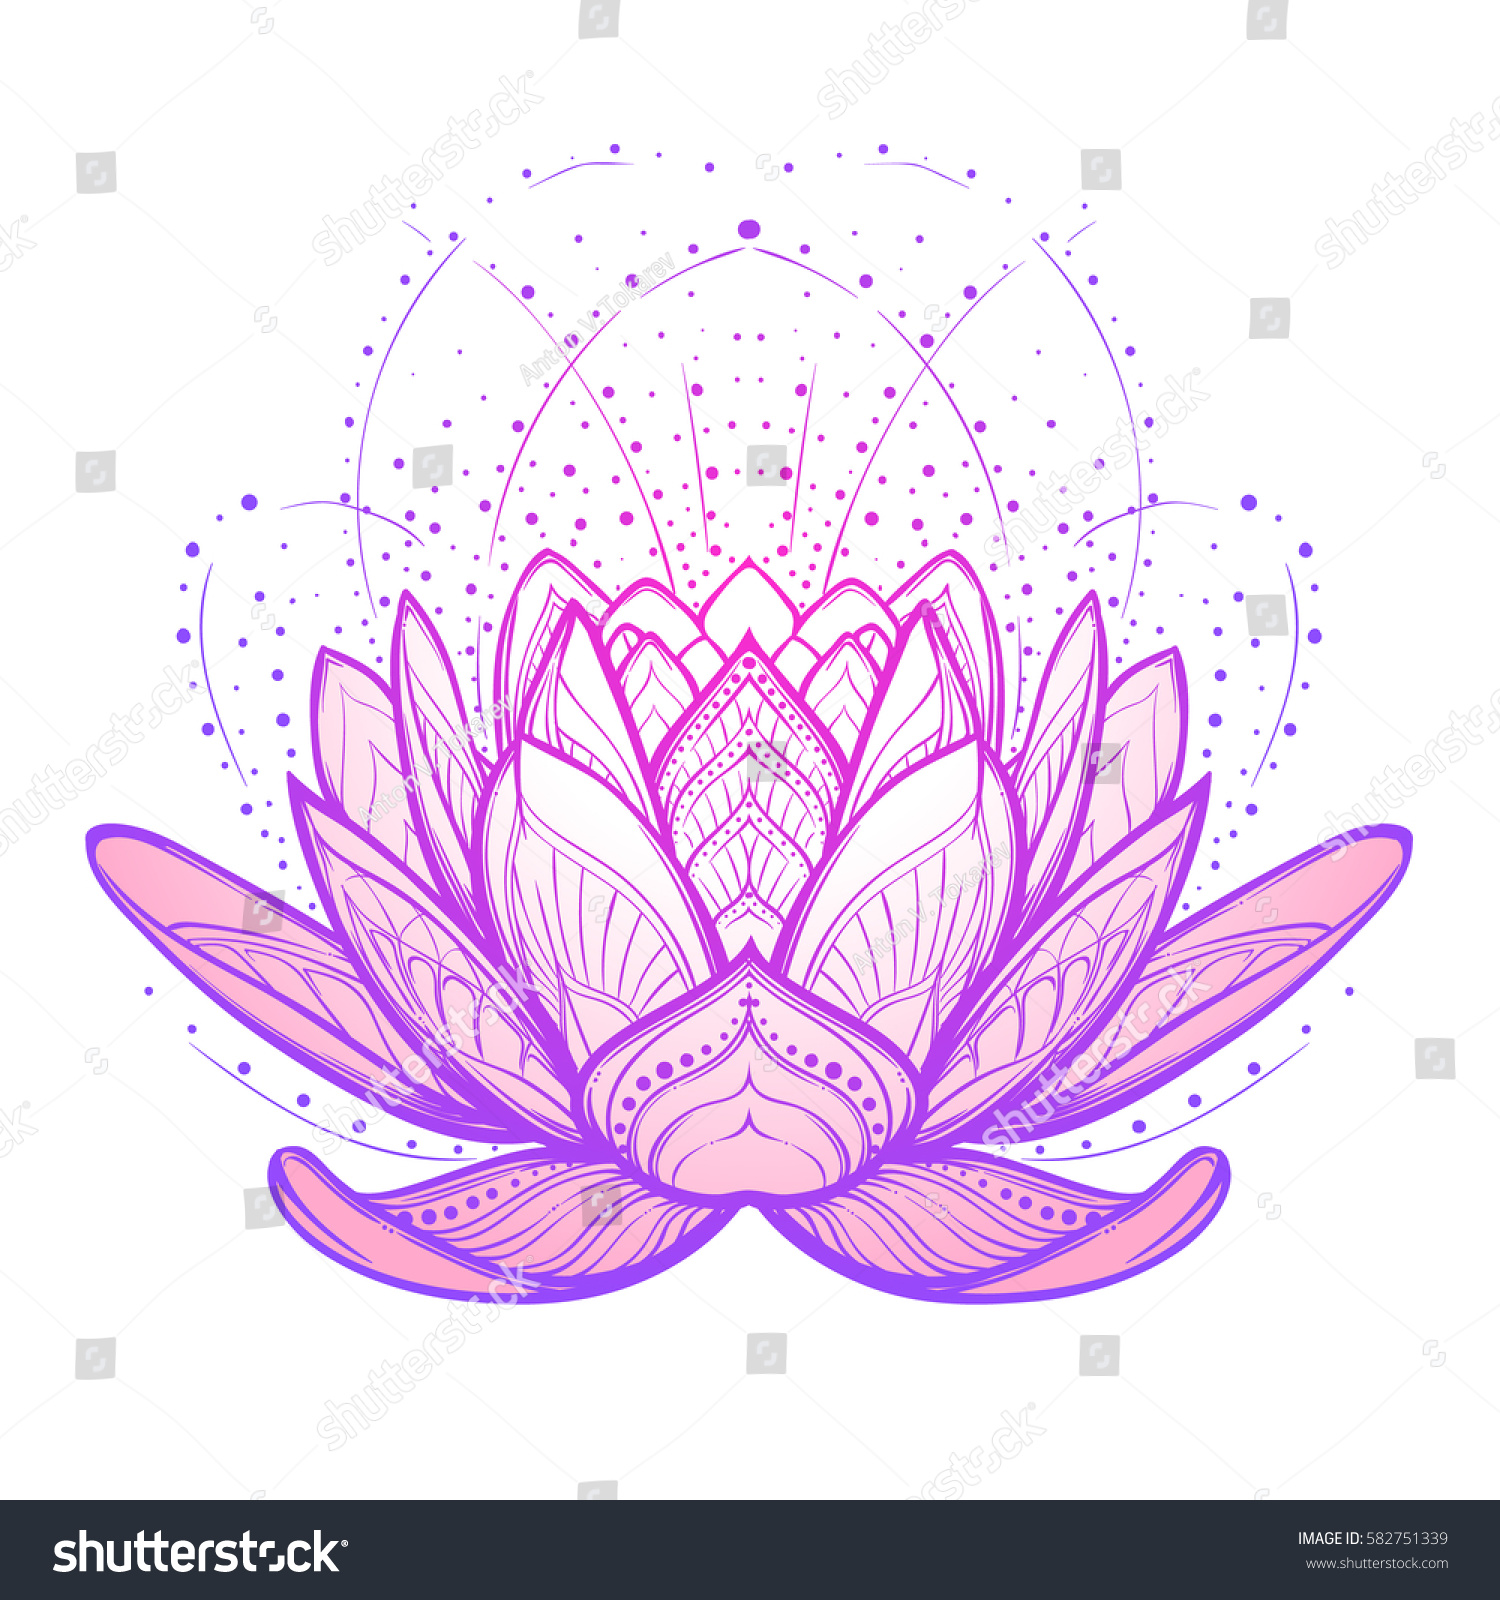 Lotus Flower Intricate Stylized Linear Drawing Stock Vector Royalty